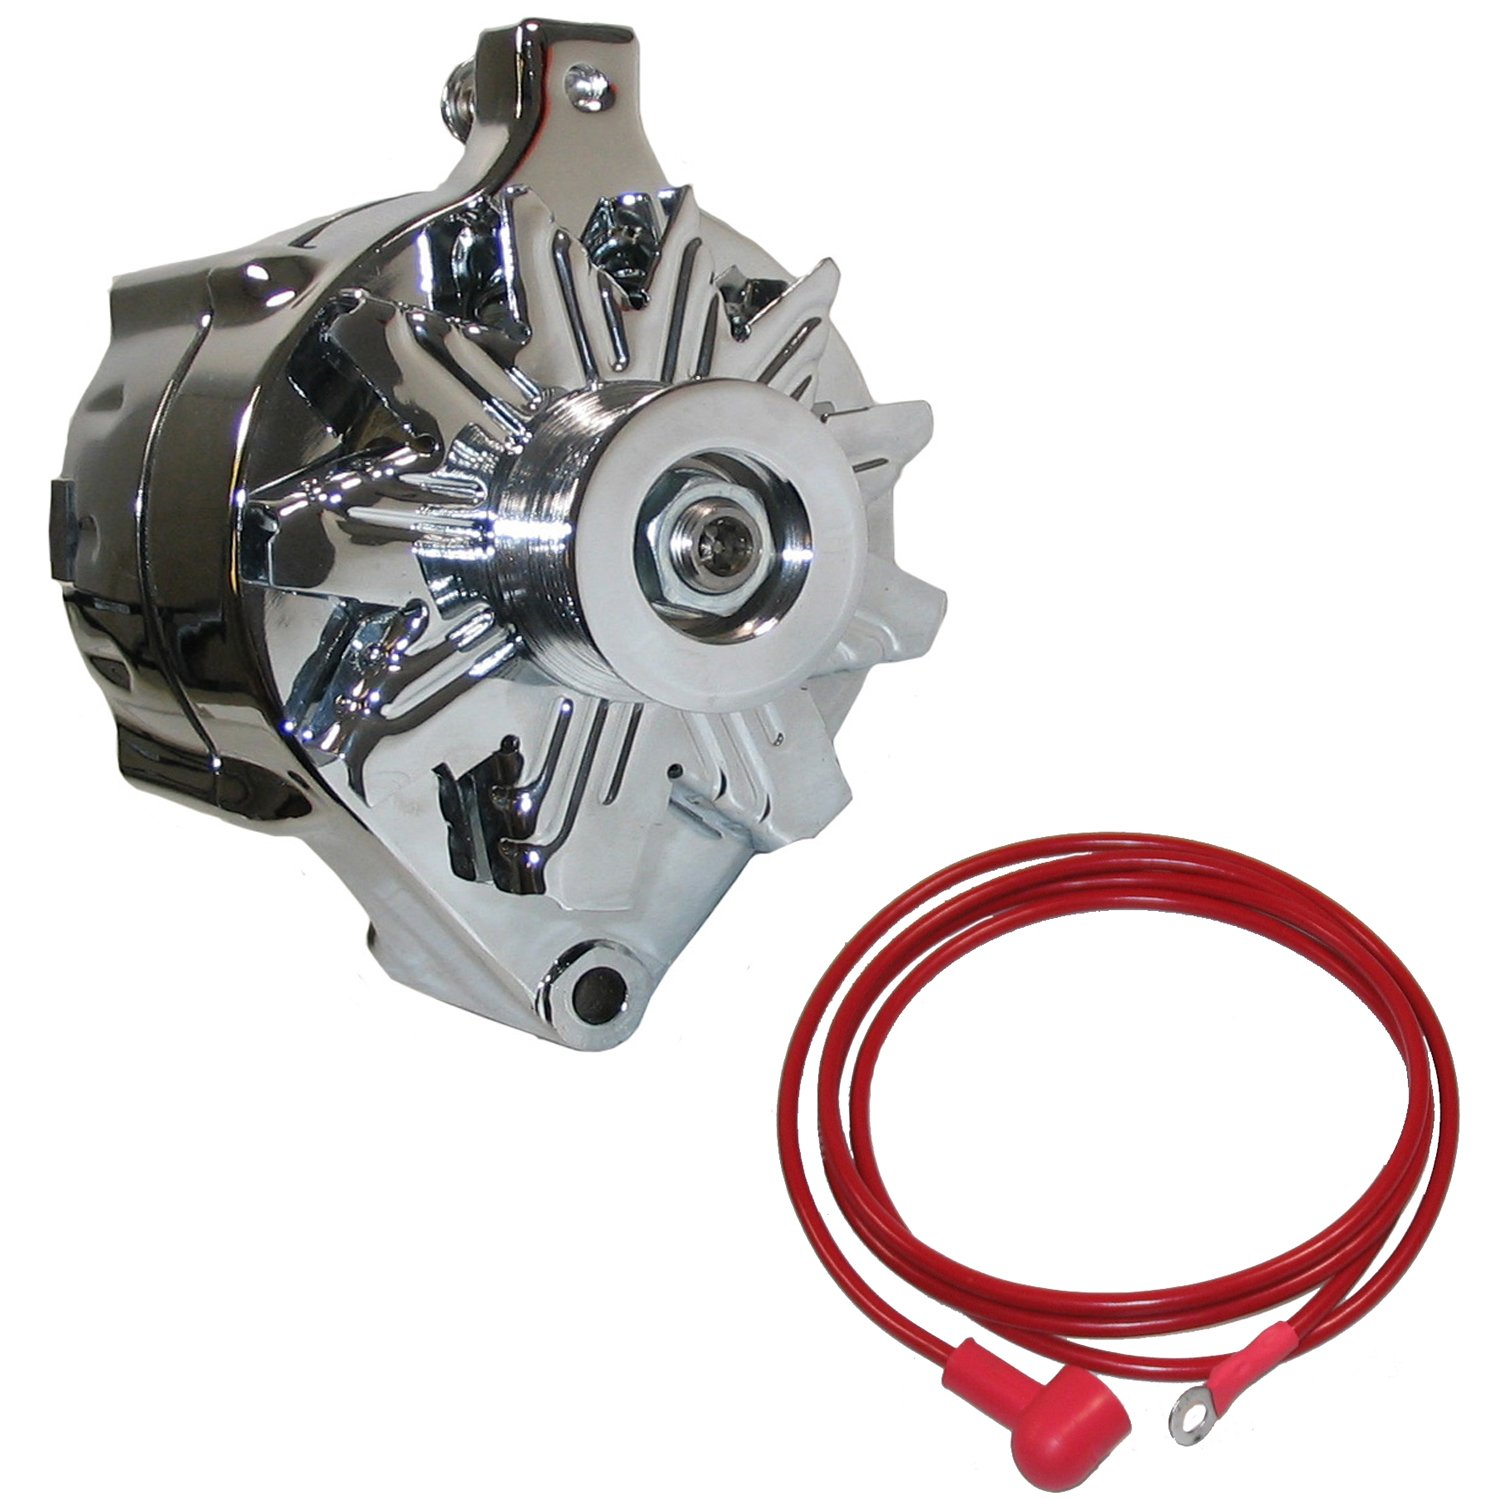 New Powermaster Chrome Alternator Serpentine Pulley One Wire Diagram 140 Amp Ford Lincoln Mecury Automotive